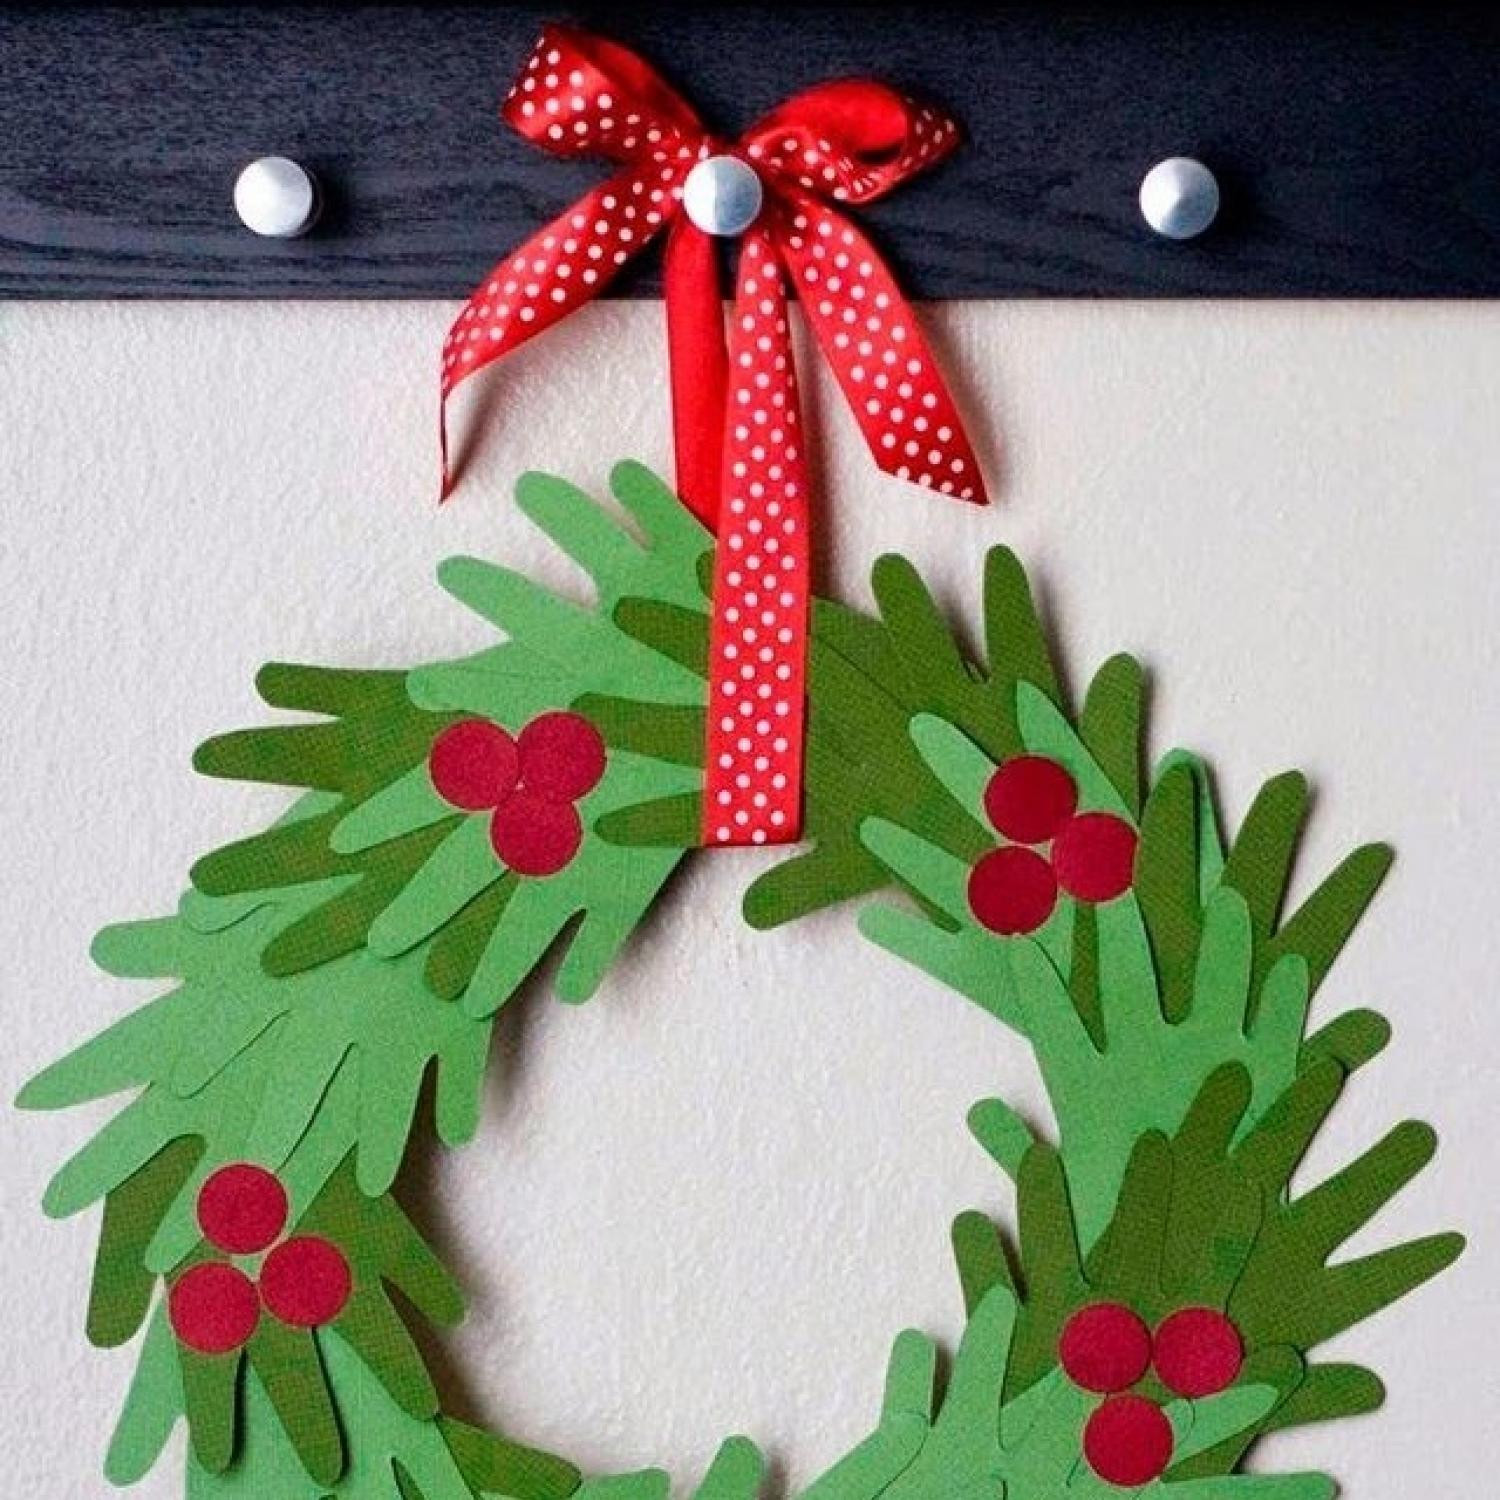 Christmas Arts And Craft Ideas For Toddlers  10 Handprint Christmas Crafts for Kids